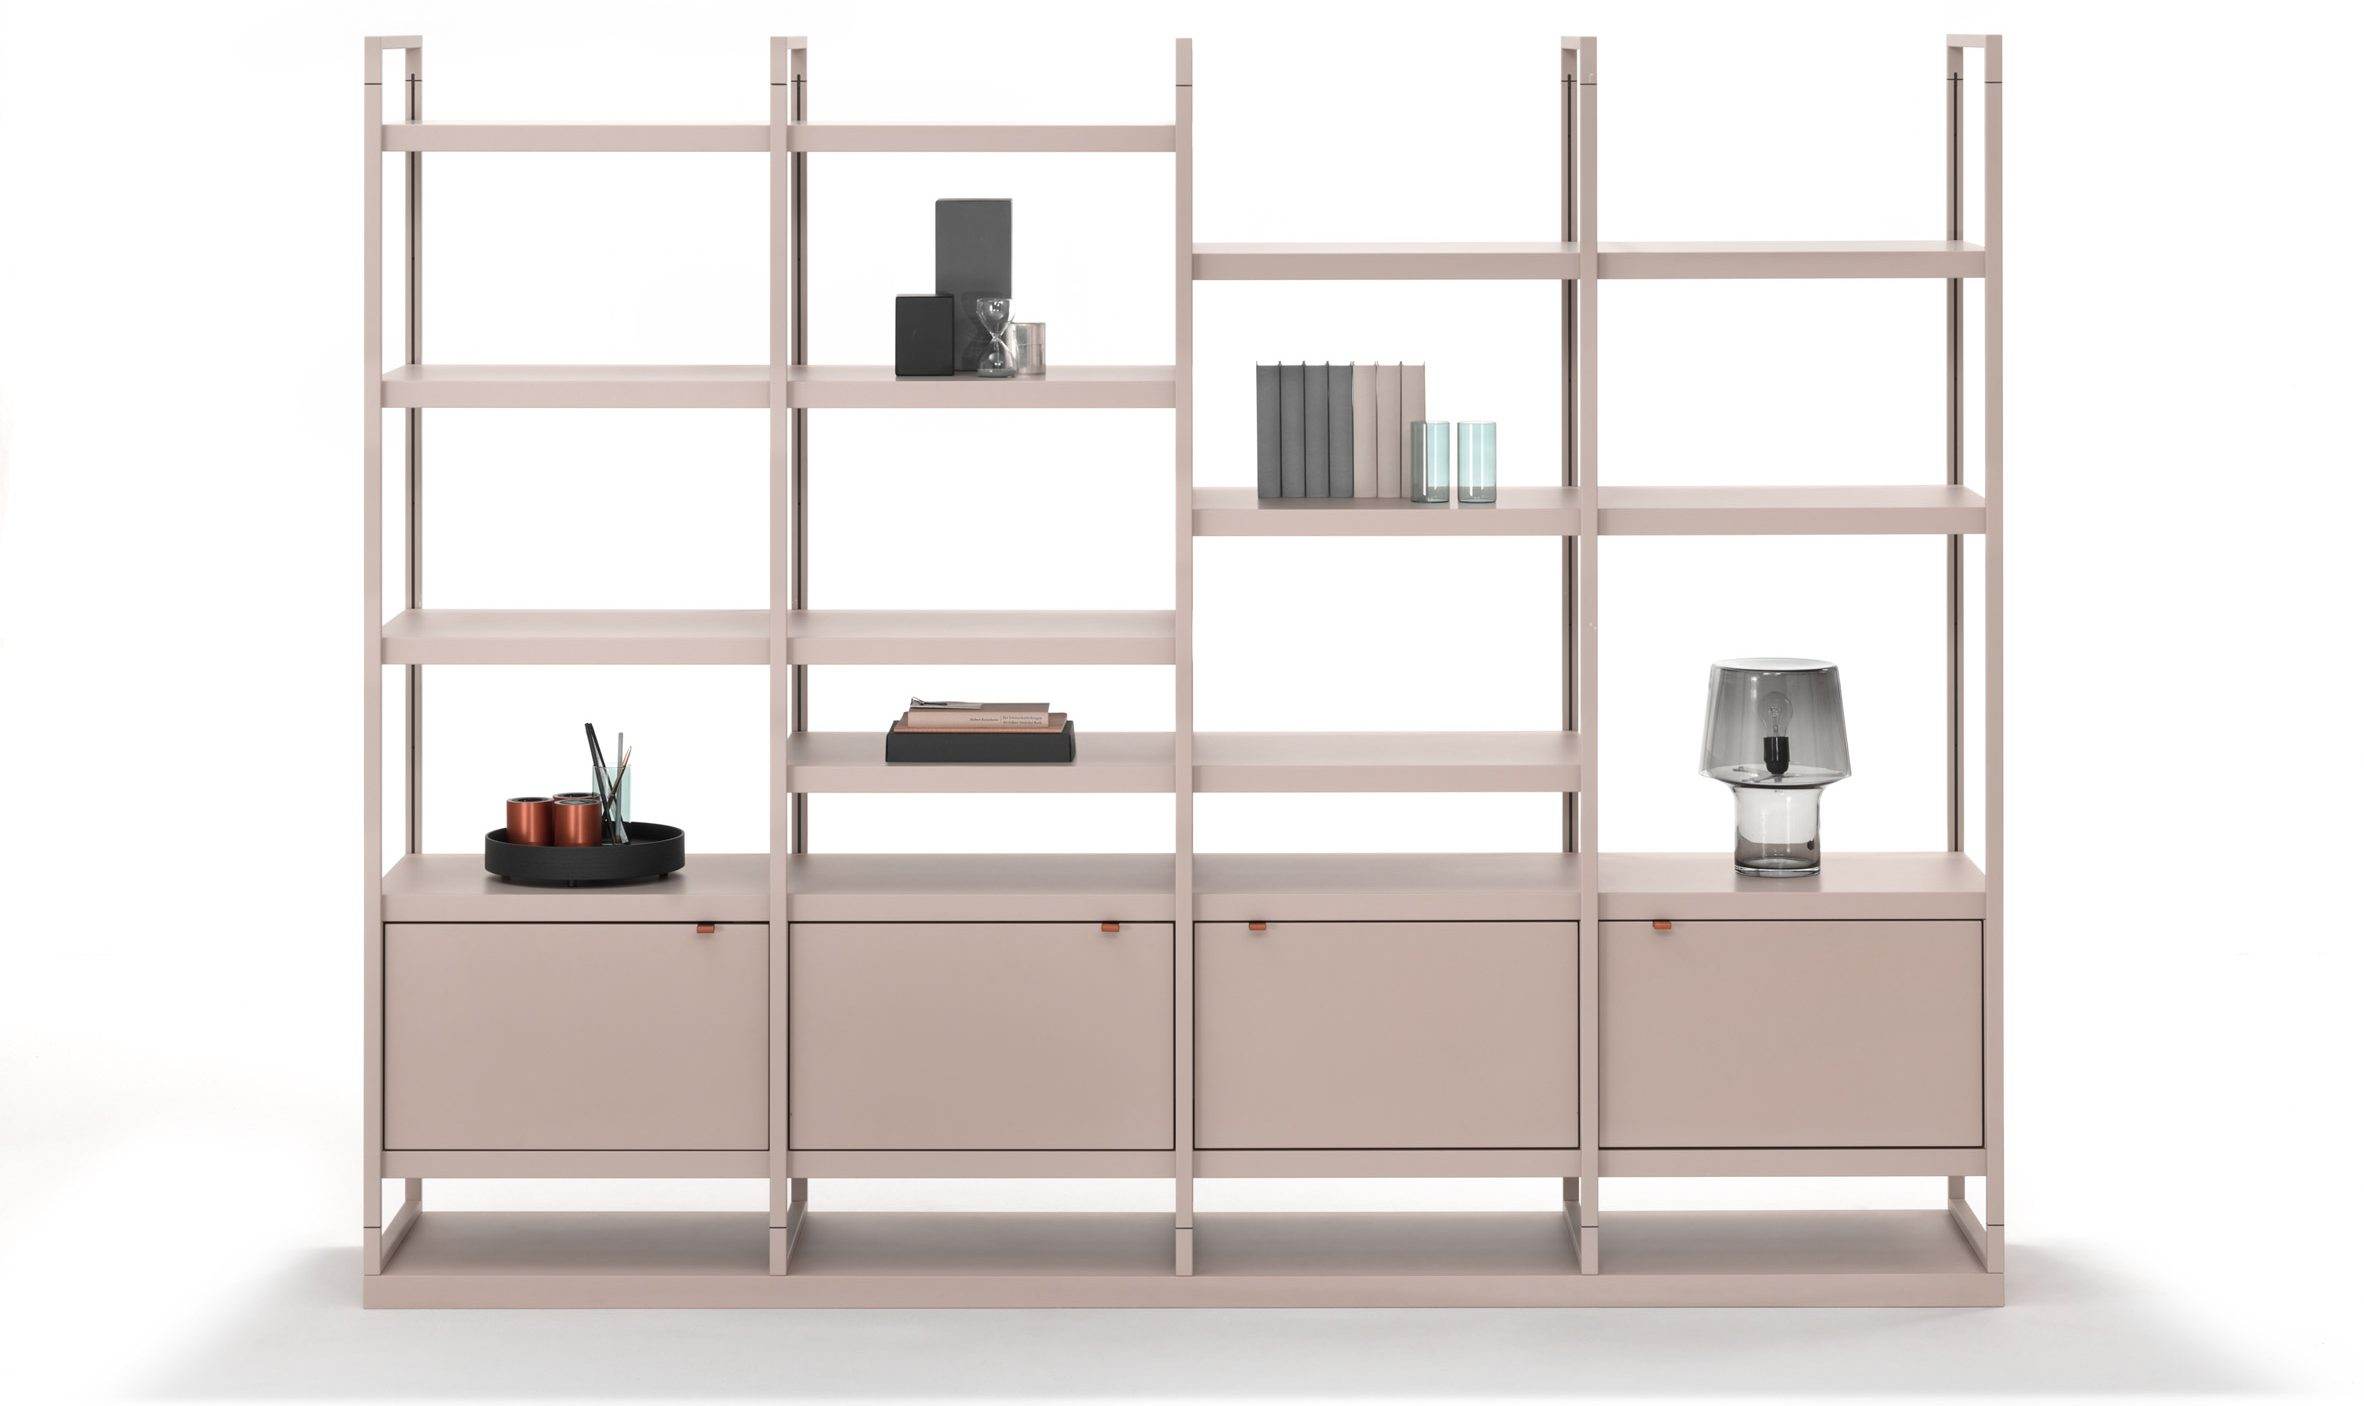 PORTS Storage by Pearson Lloyd for Bene